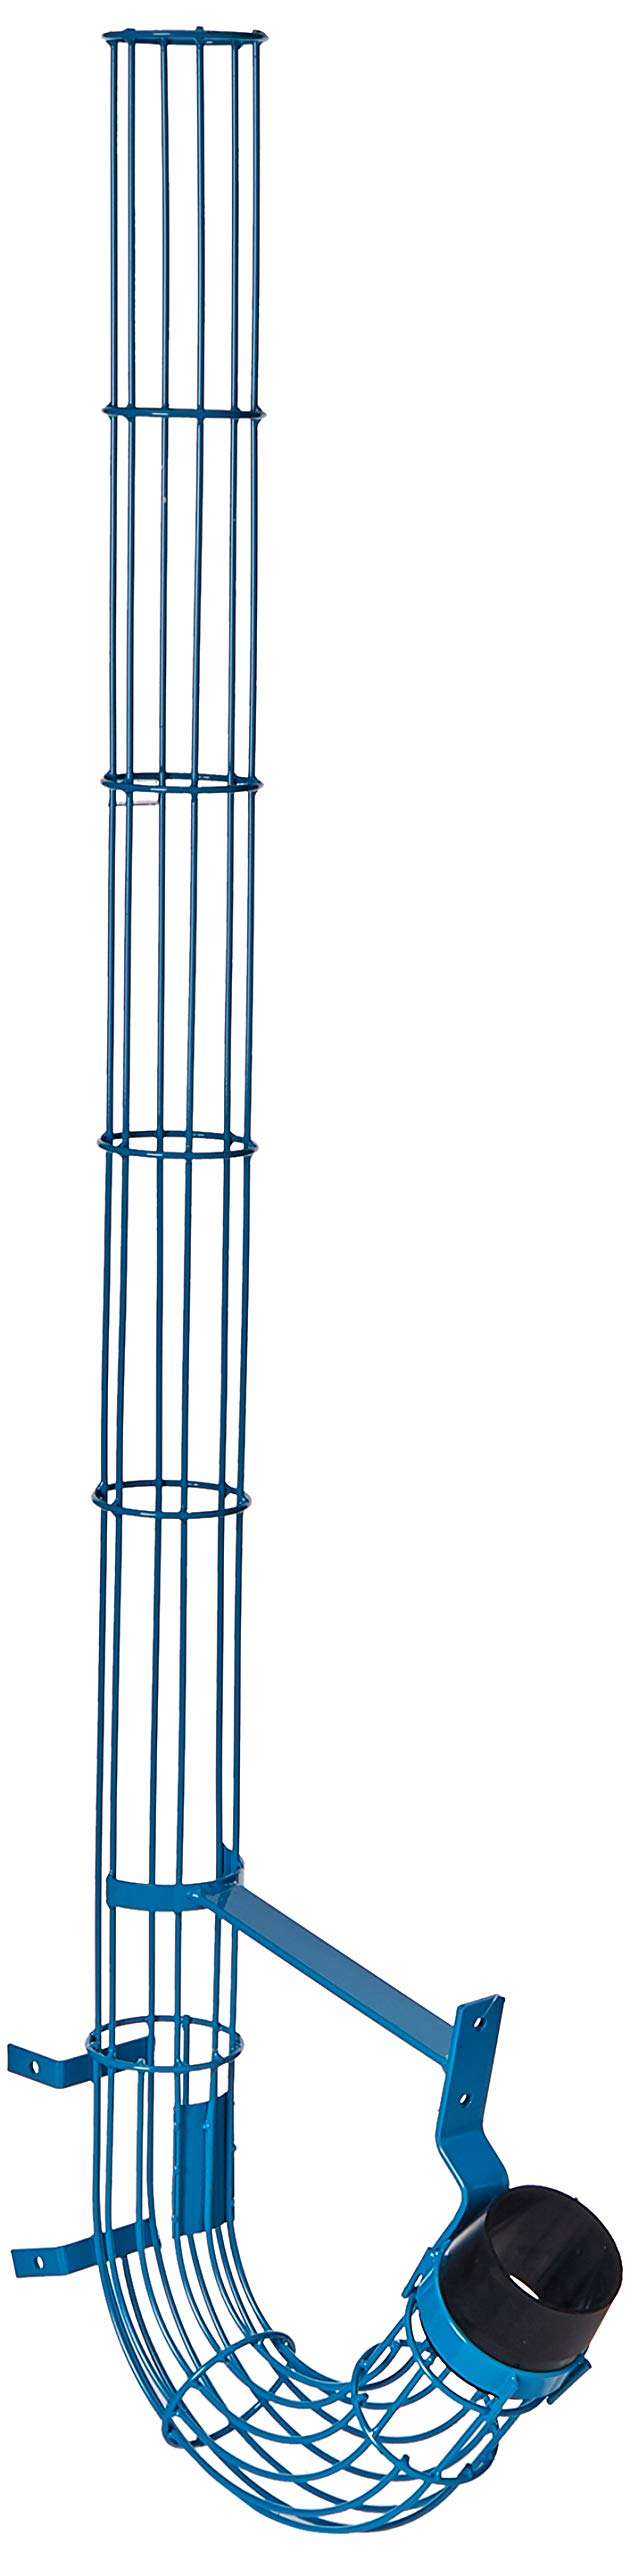 Jugs F1025 18-Ball Lite-Flite Feeder for Baseball (Only Loader Machine Sold Separately) by Jugs